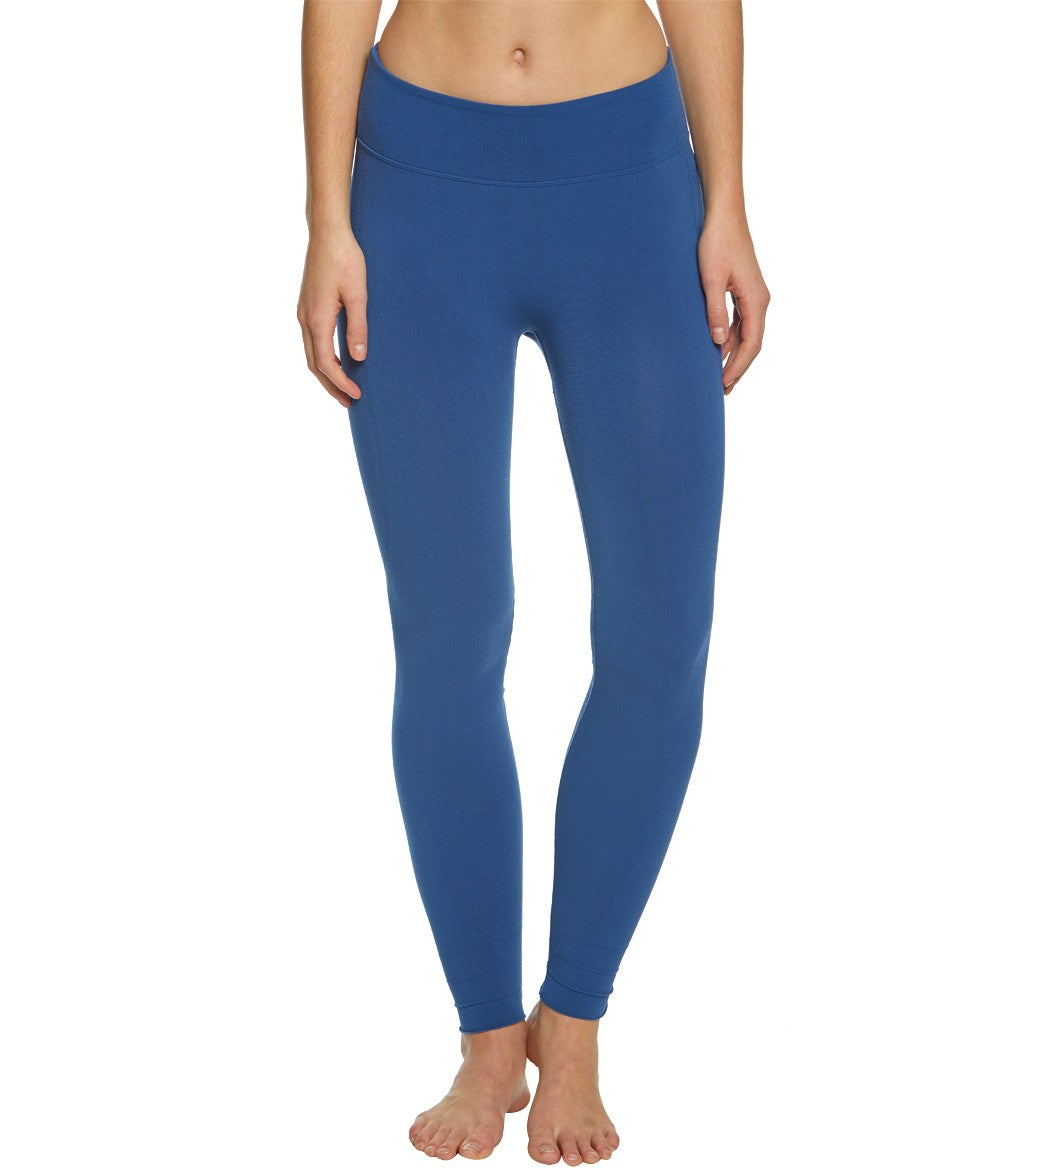 Free People Movement Sculpt Seamless Yoga Leggings - Blue Spandex